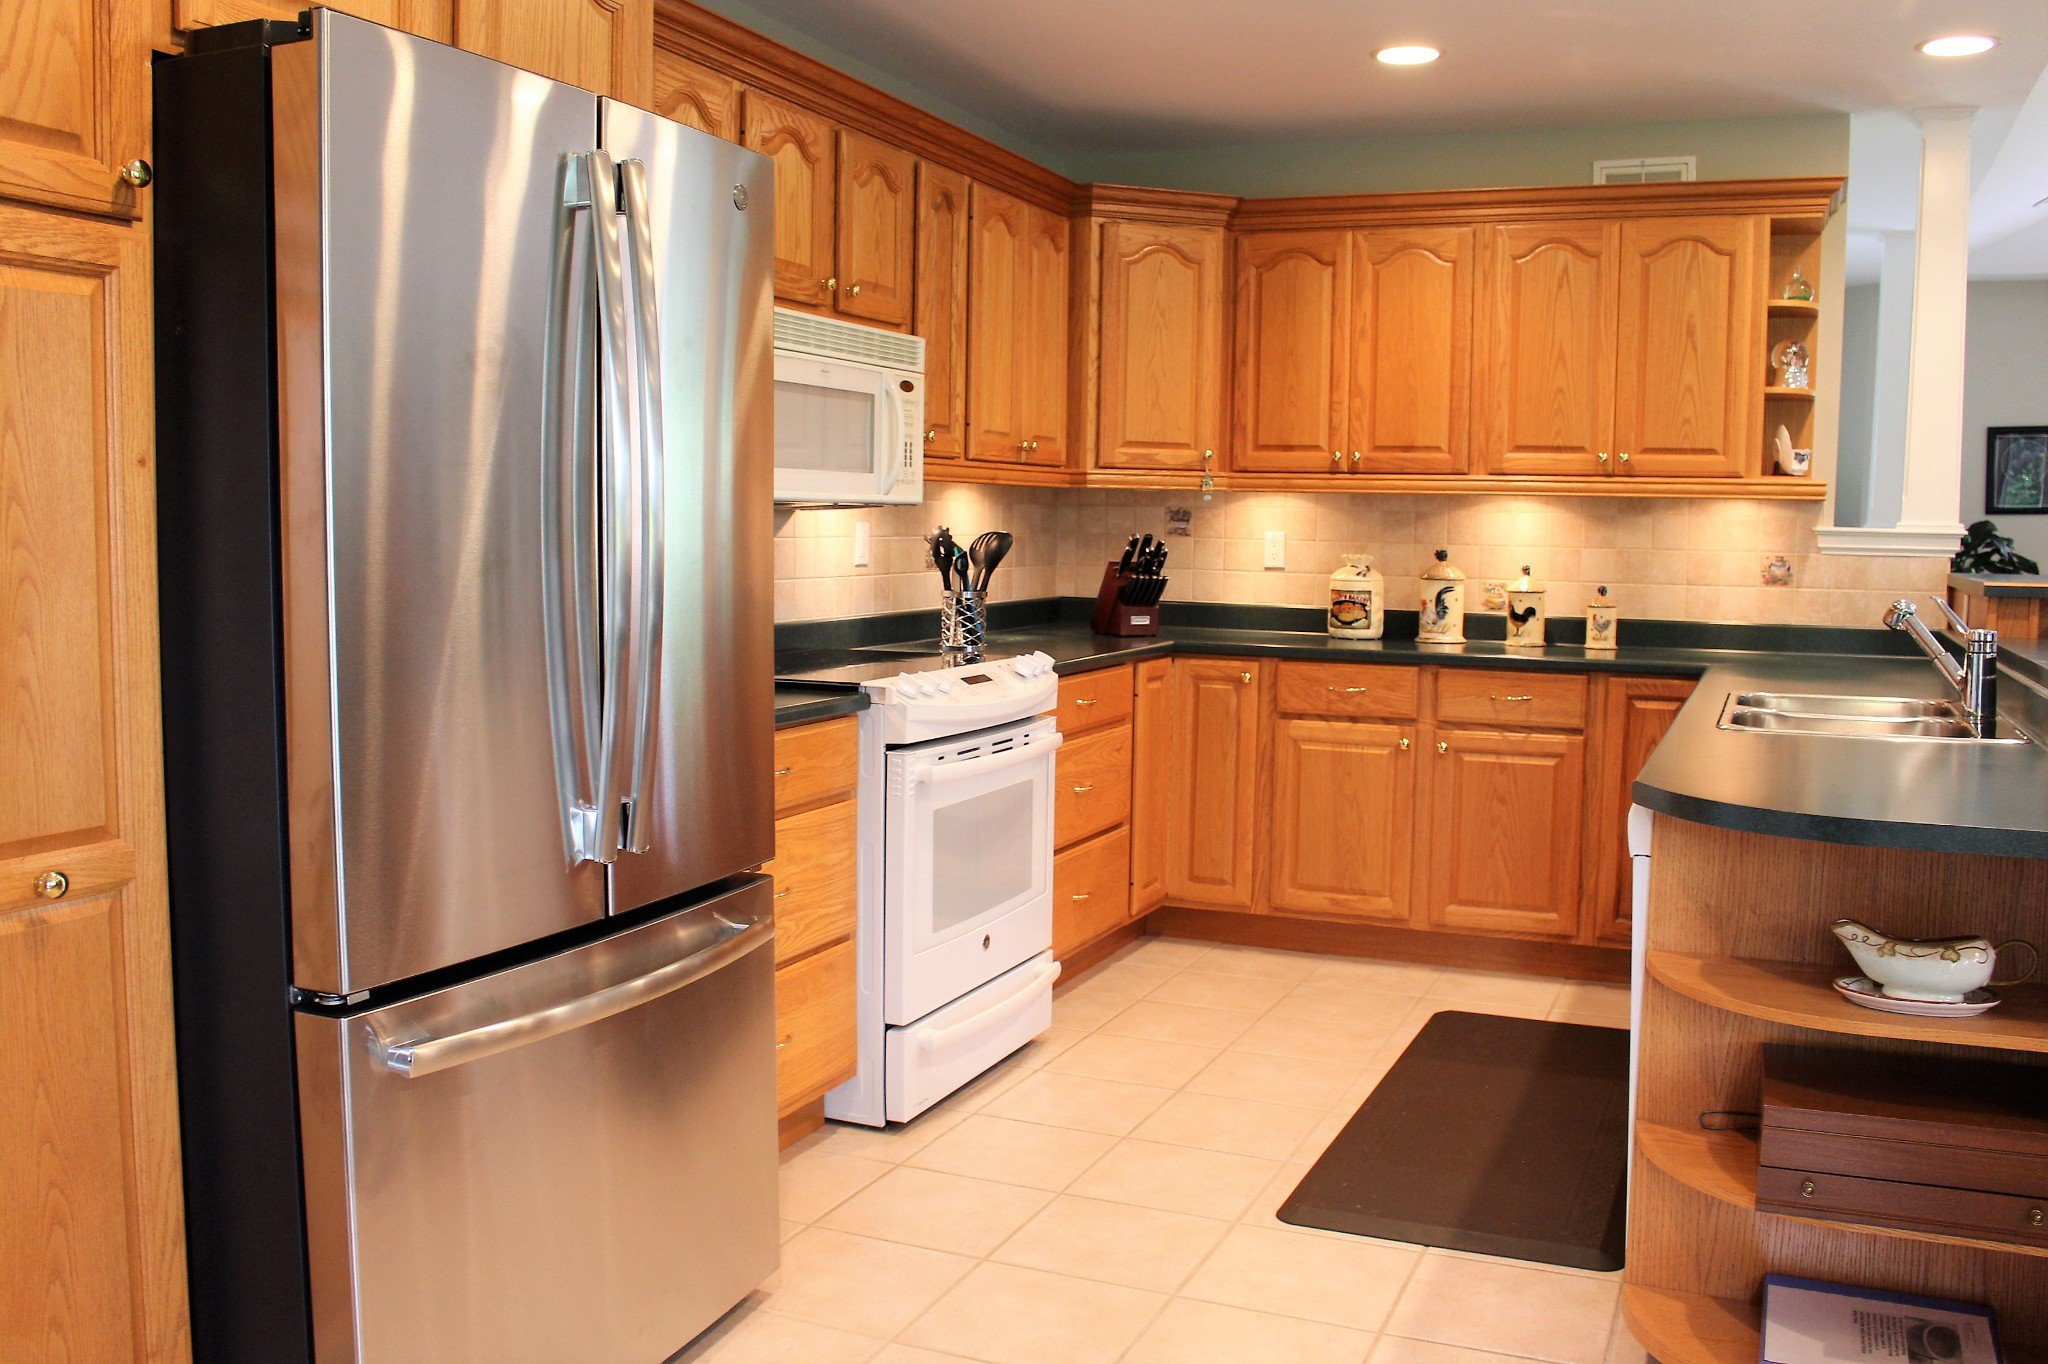 Photo 16: Photos: 159 Nawautin Drive in Grafton: Residential Detached for sale : MLS®# 40012652